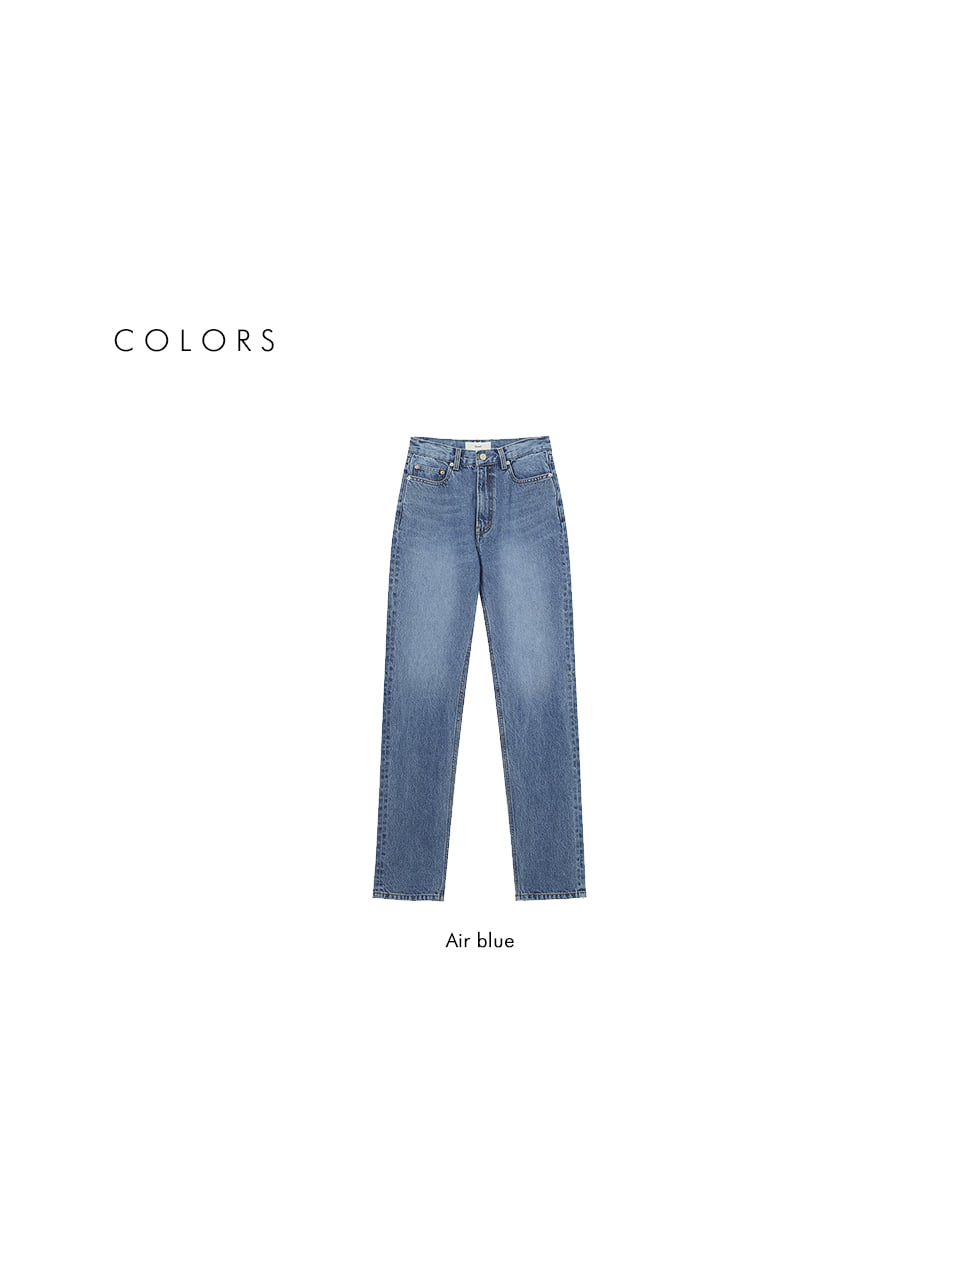 던스트 포 우먼(DUNST FOR WOMEN) HIGH-RISE STRAIGHT JEANS AIR BLUE_UDPA1E213B1